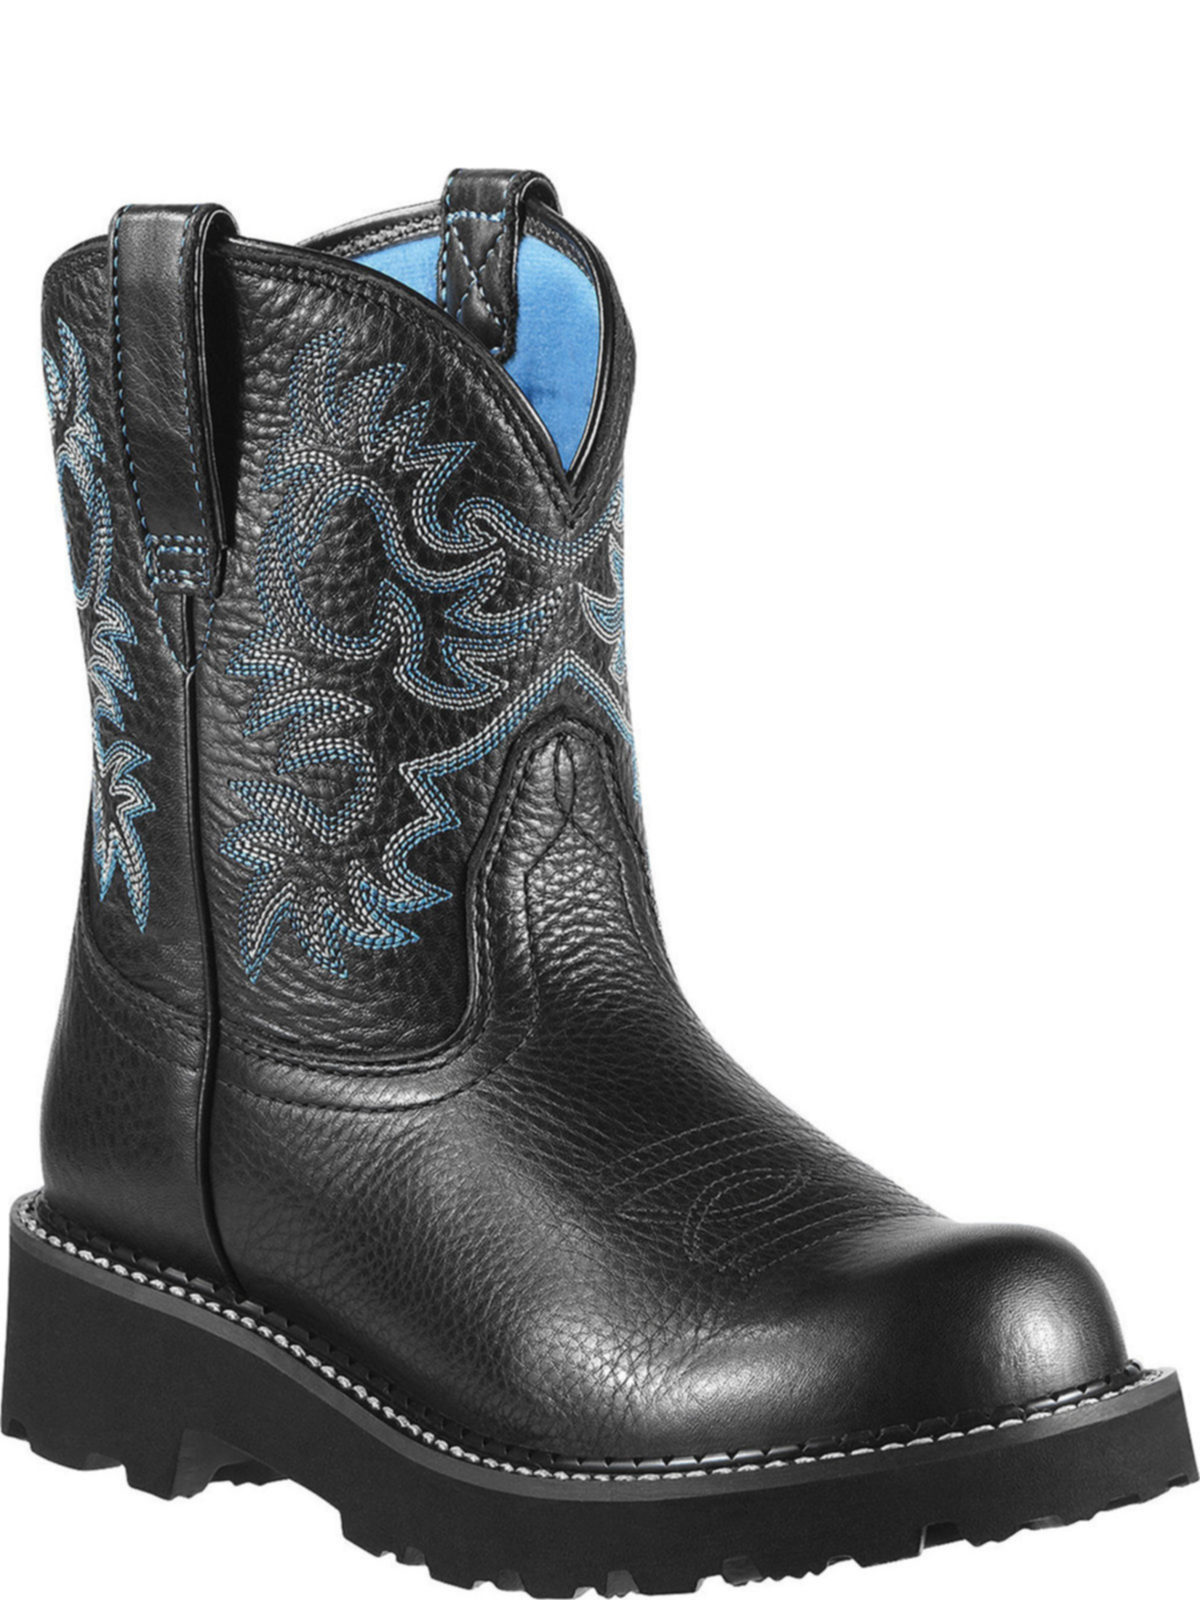 Bootamerica Ariat Womens Fatbaby Black Deertan Boot 10000833